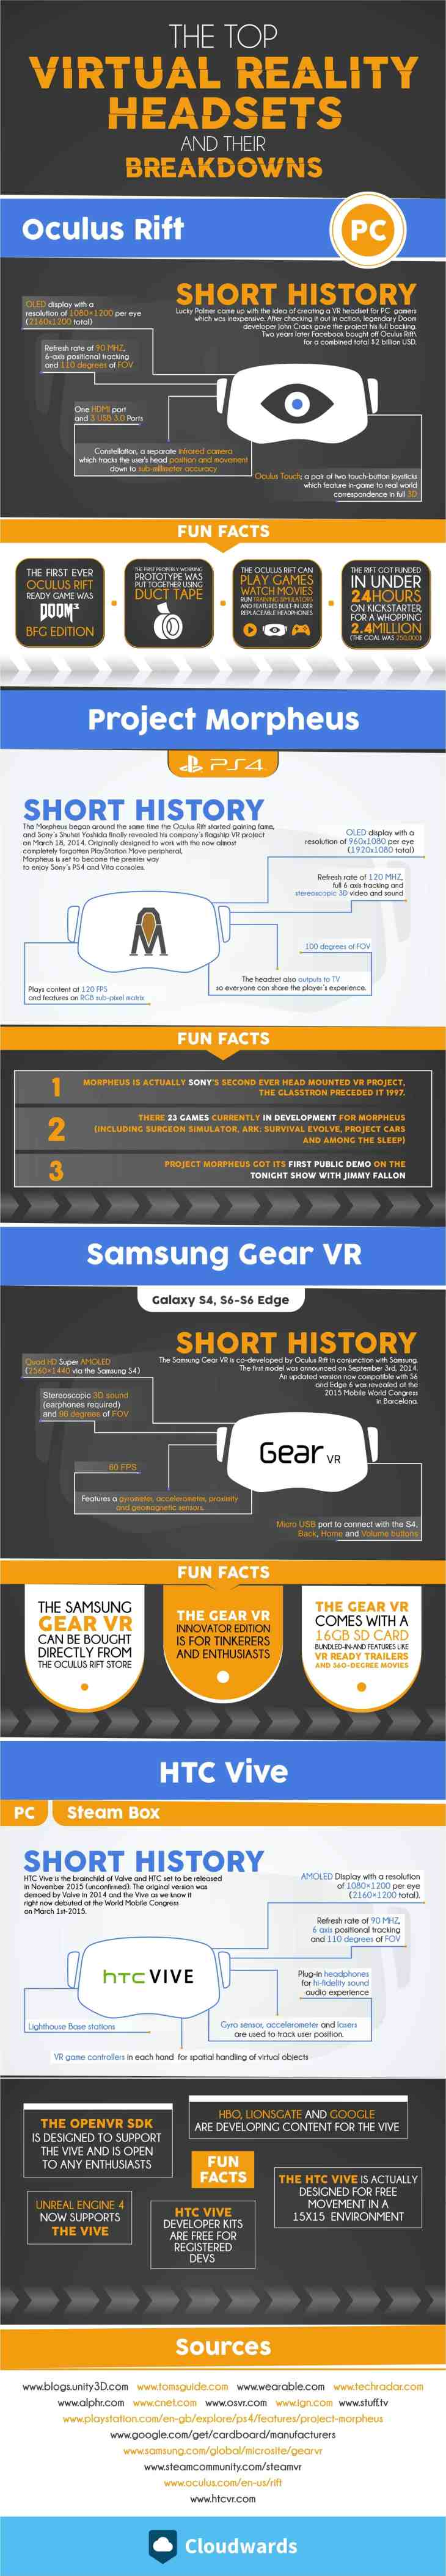 Virtual Reality headsets VR headsets